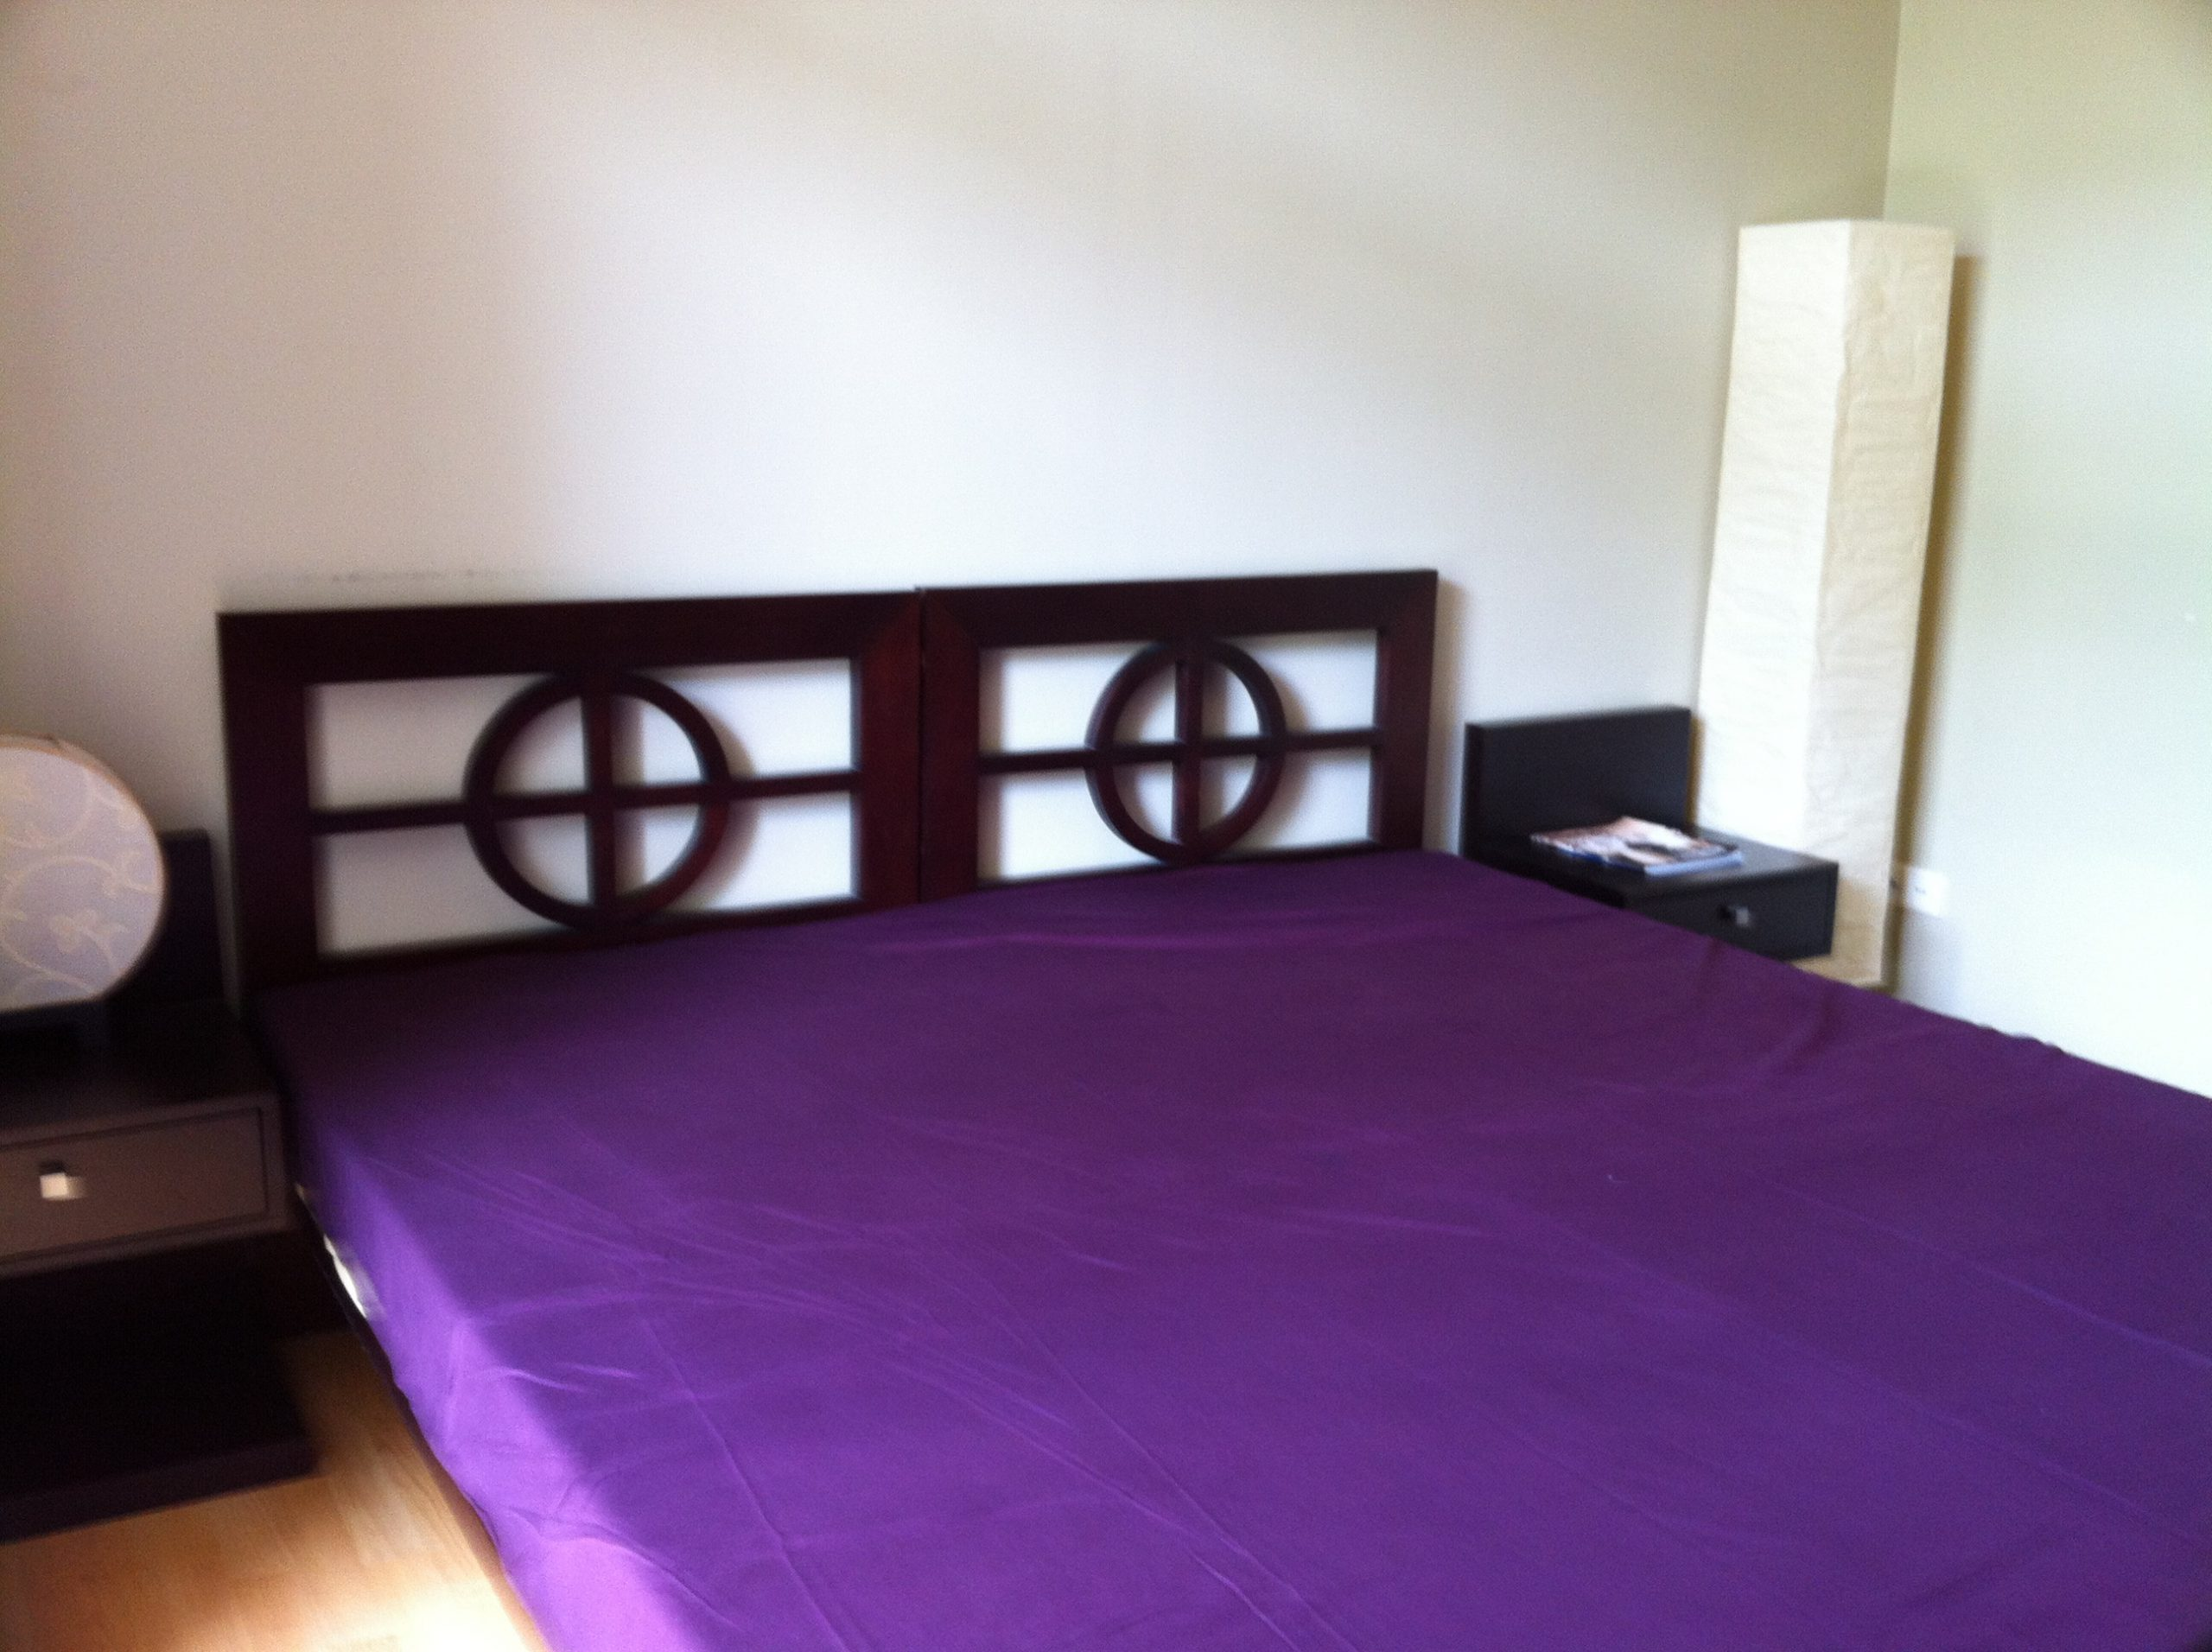 Hung Thai compoud for rent in Phu MY HUng